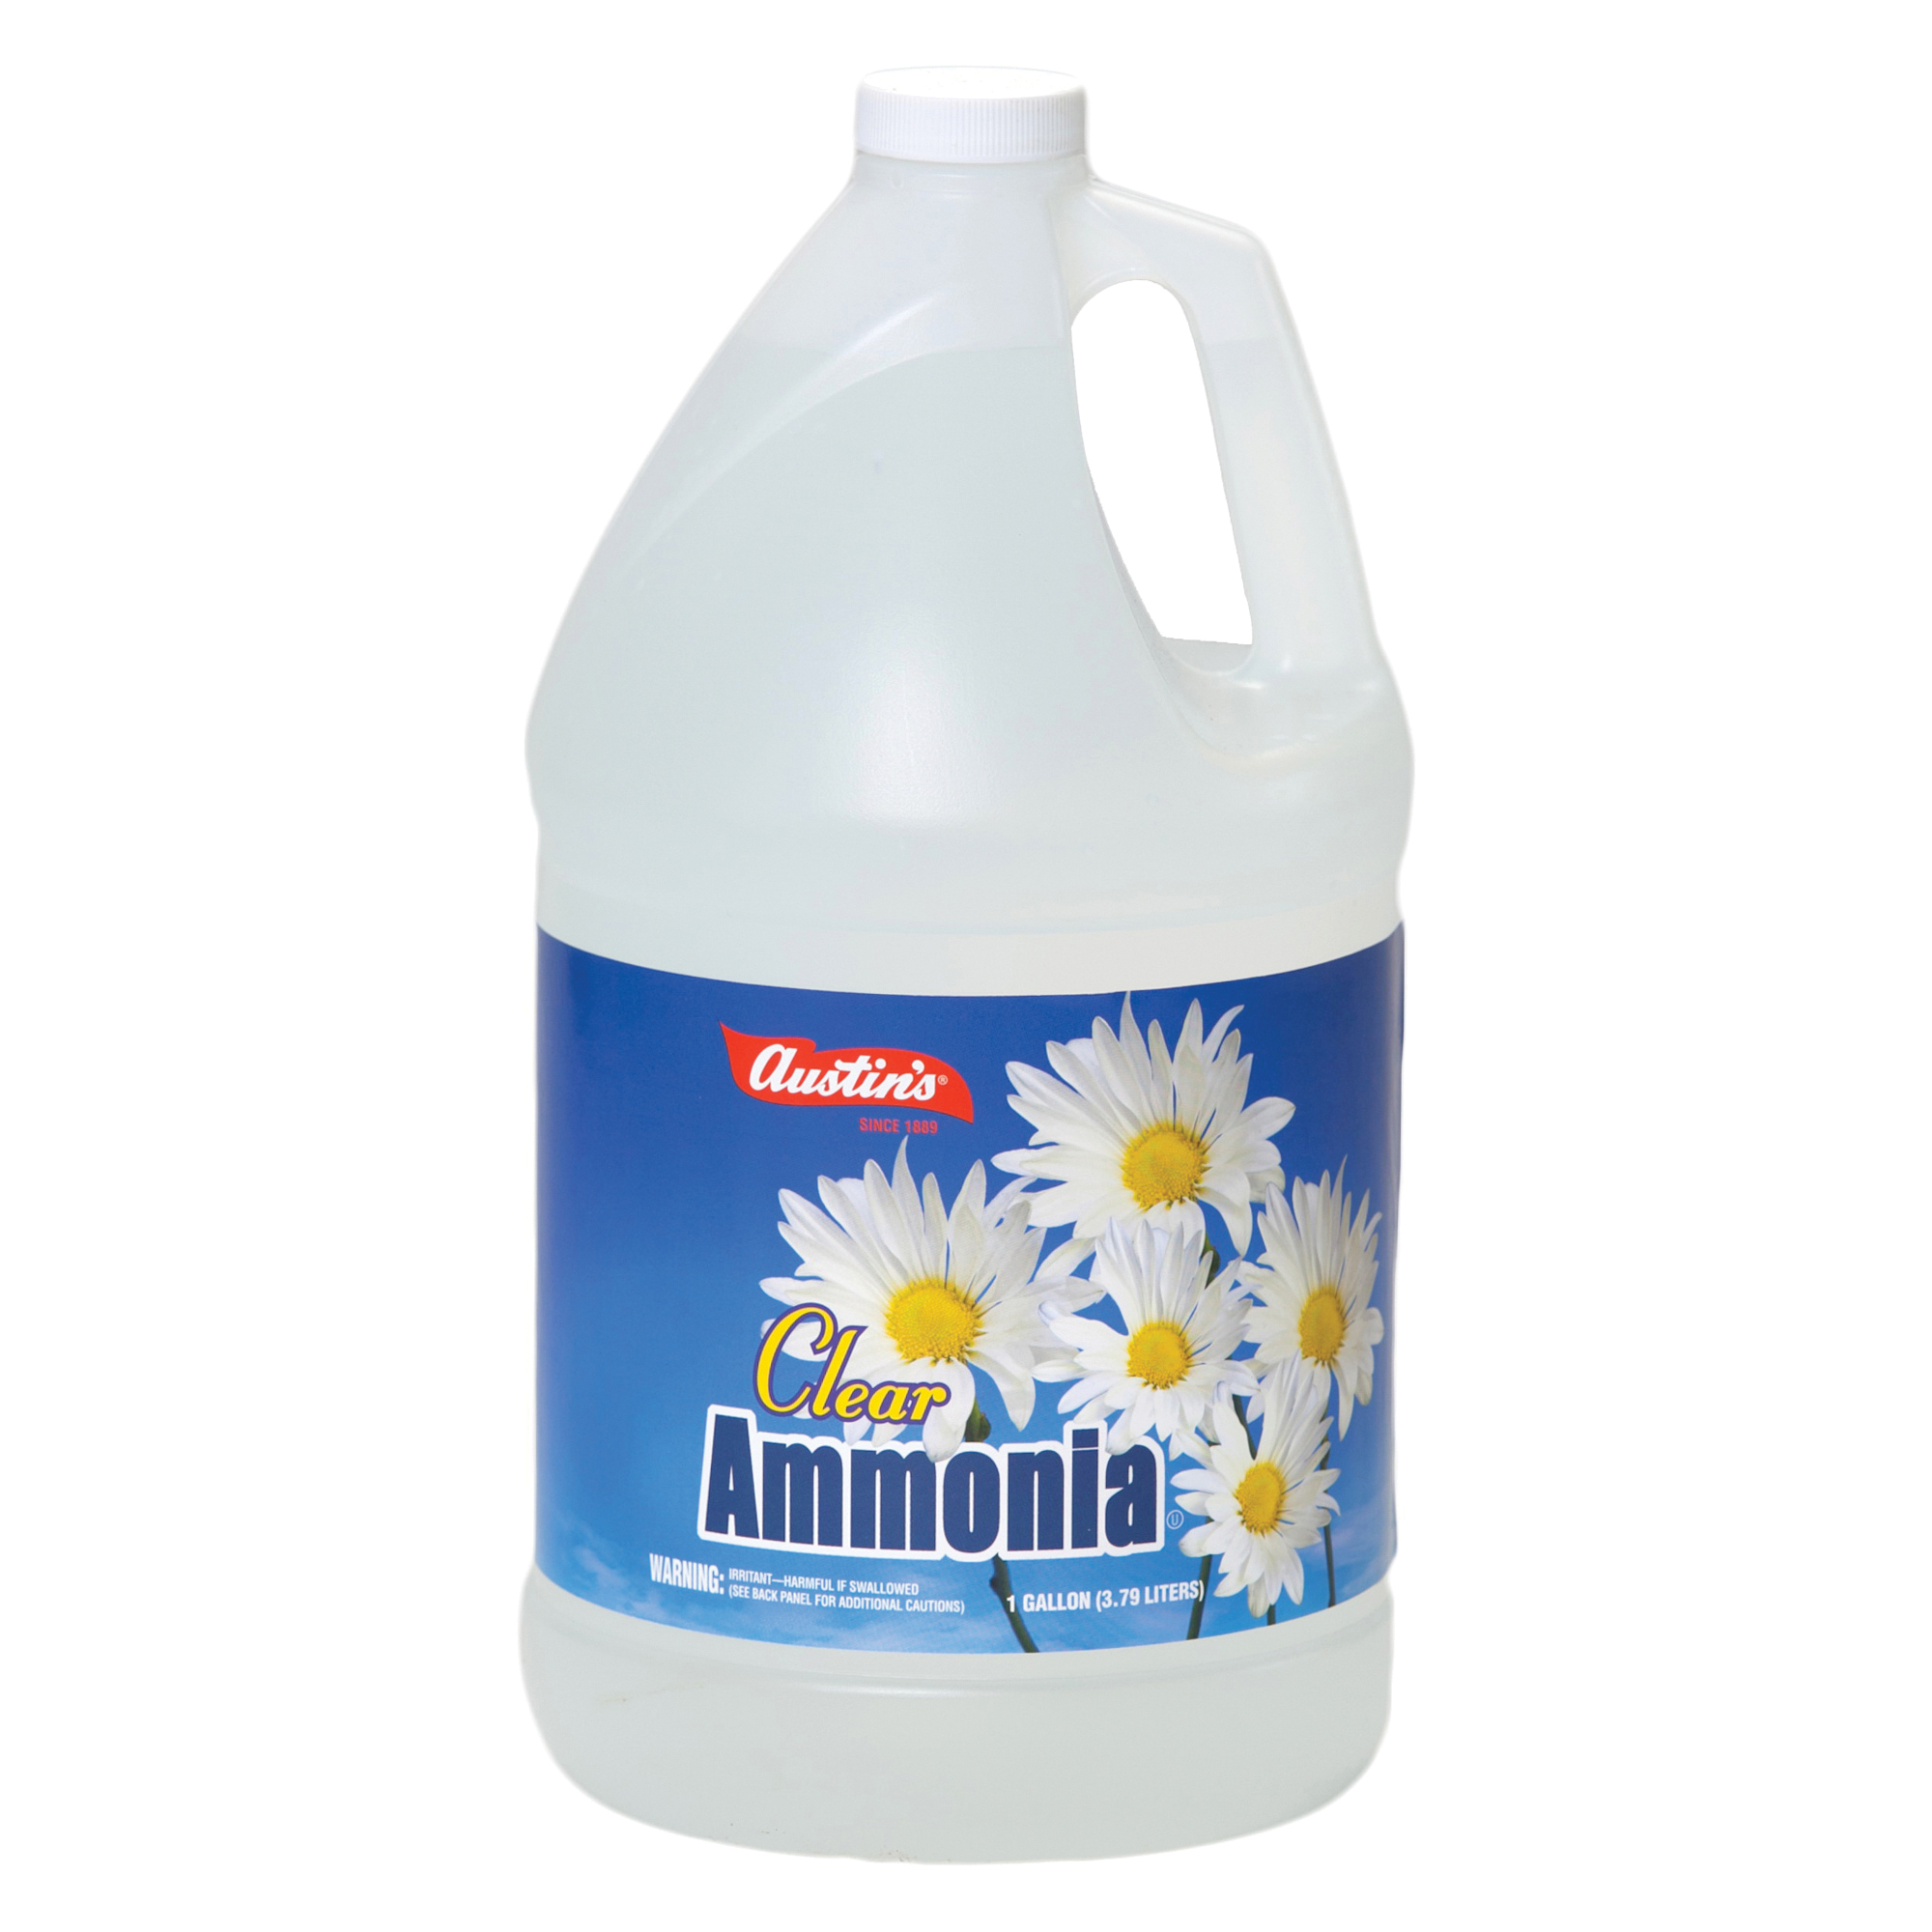 Picture of Austin 52 Clear Ammonia, 128 oz Package, Bottle, Liquid, Pungent Ammonia, Colorless